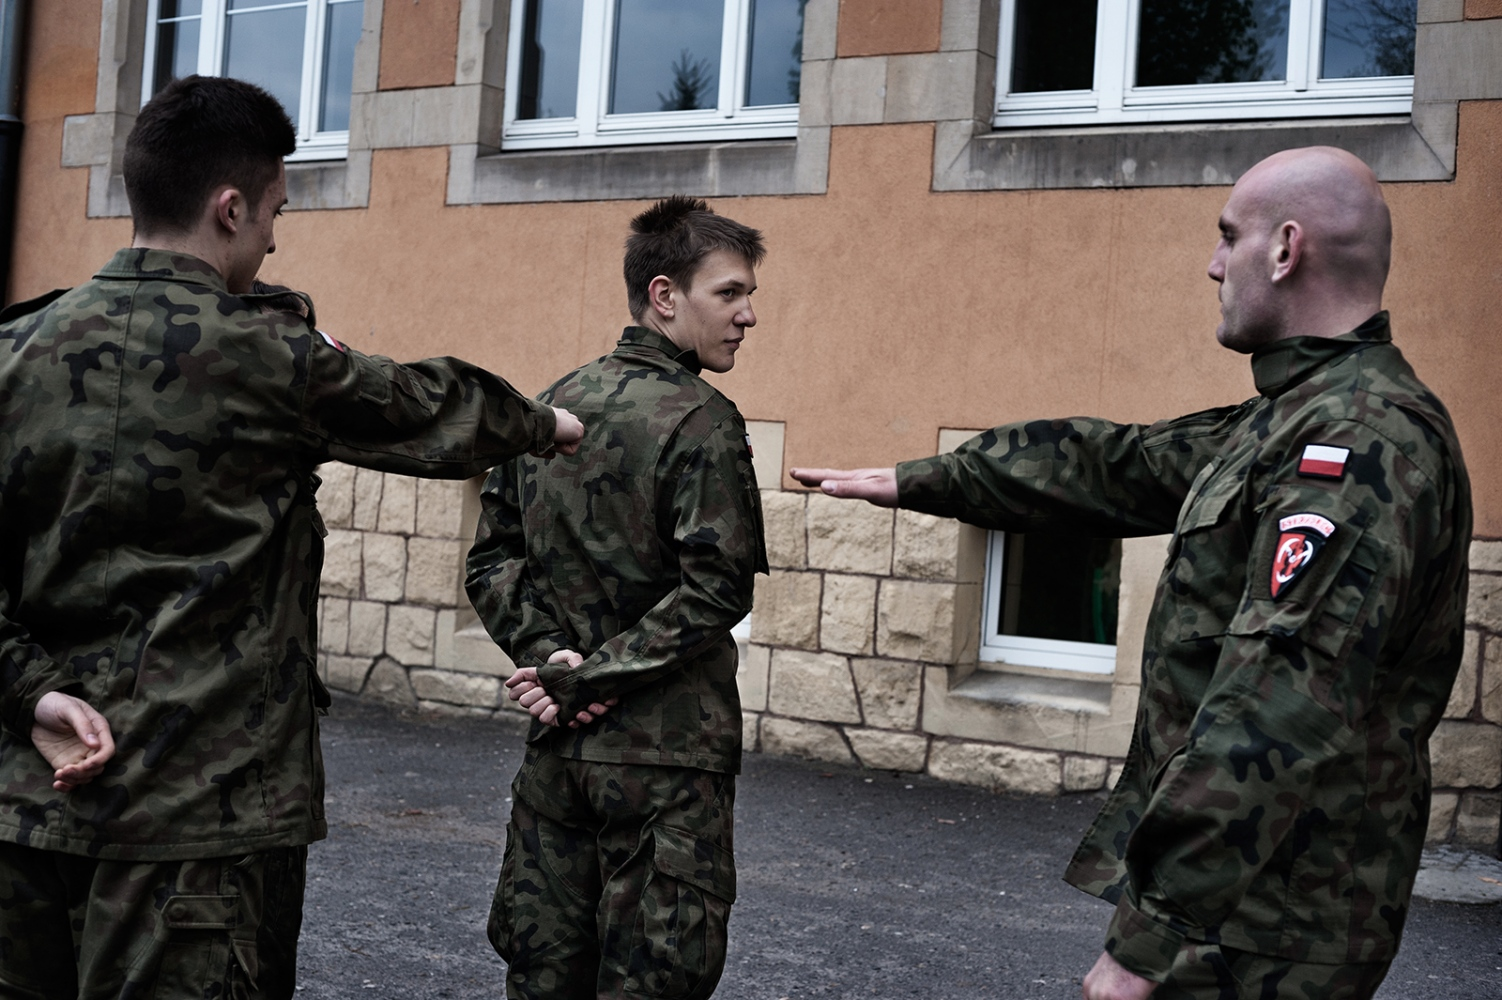 "Students from the public High School in Brzeg during the military training under the supervision of Sebastian Lipinski, the instructor in charge of the Unit 3060. Brzeg 2017 ""The discipline and military training are very important. The values we want to convey are summarized in three words: God, Honor and Fatherland. We promote integrity by taking the extinct Unbreakable Soldiers as an example. Each student chooses his referent, learns his biography and puts his nickname of war on the uniform."" (Sebastian Lipinski)  The Unbreakable Soldiers (also called Damned) were members of the National Army, the armed wing of the Polish secret State during the Second World War. Persecuted by the communist regime, today they are elevated to the rank of national heroes. However, some were directly involved in murders of Polish civilians of Belarusian origin – crimes that took place in northeastern Poland 70 years ago. Many Poles avoid talking about these issues, while current governmental instances minimize the magnitude of those events or question the veracity of some testimonies."